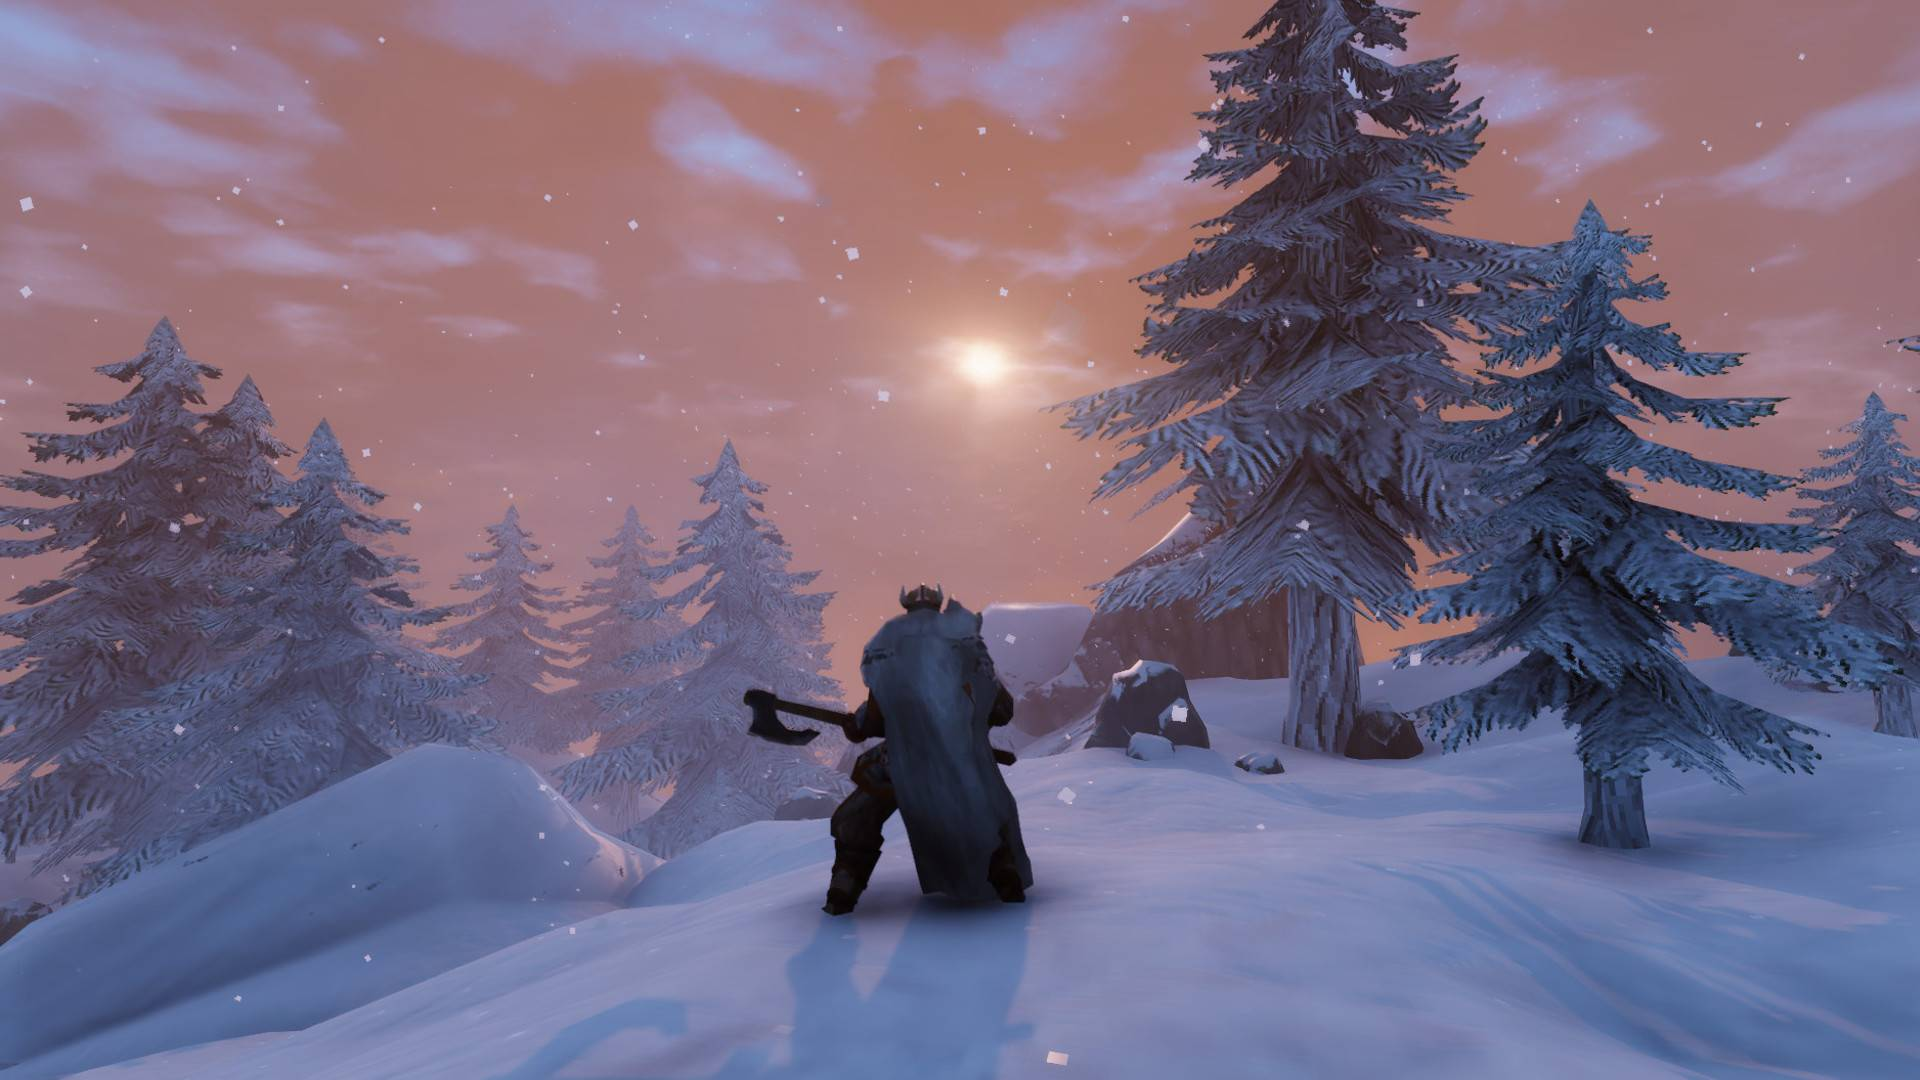 Playing Valheim using Vulkan could improve your frame rate and fix crashes